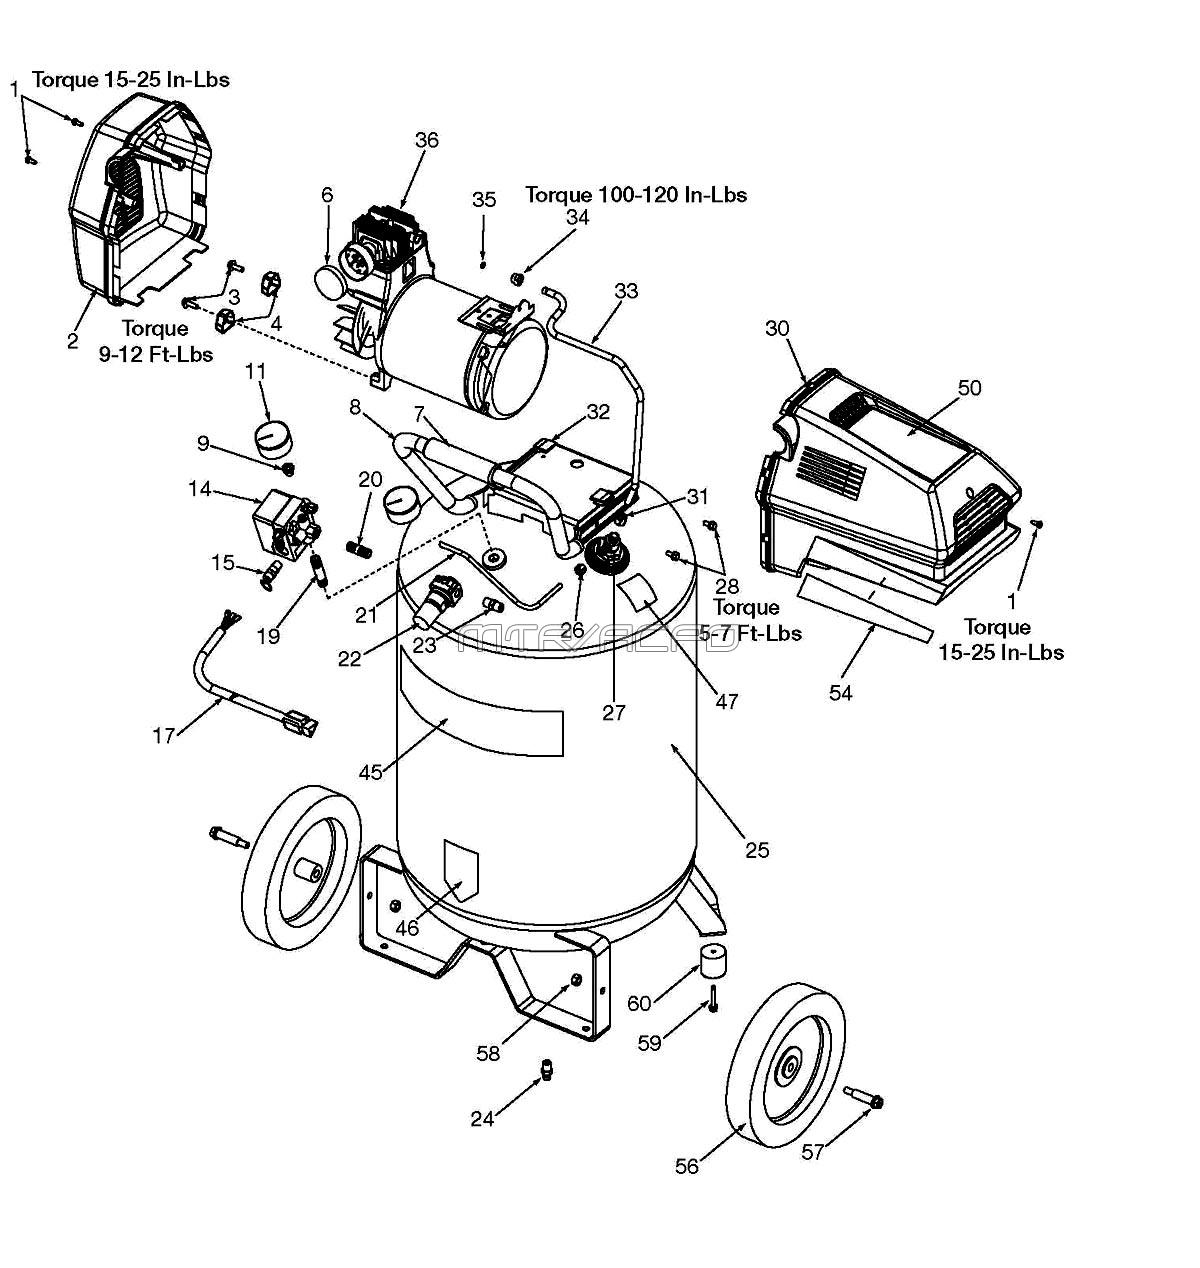 919.167320 - Air Compressor Parts schematic